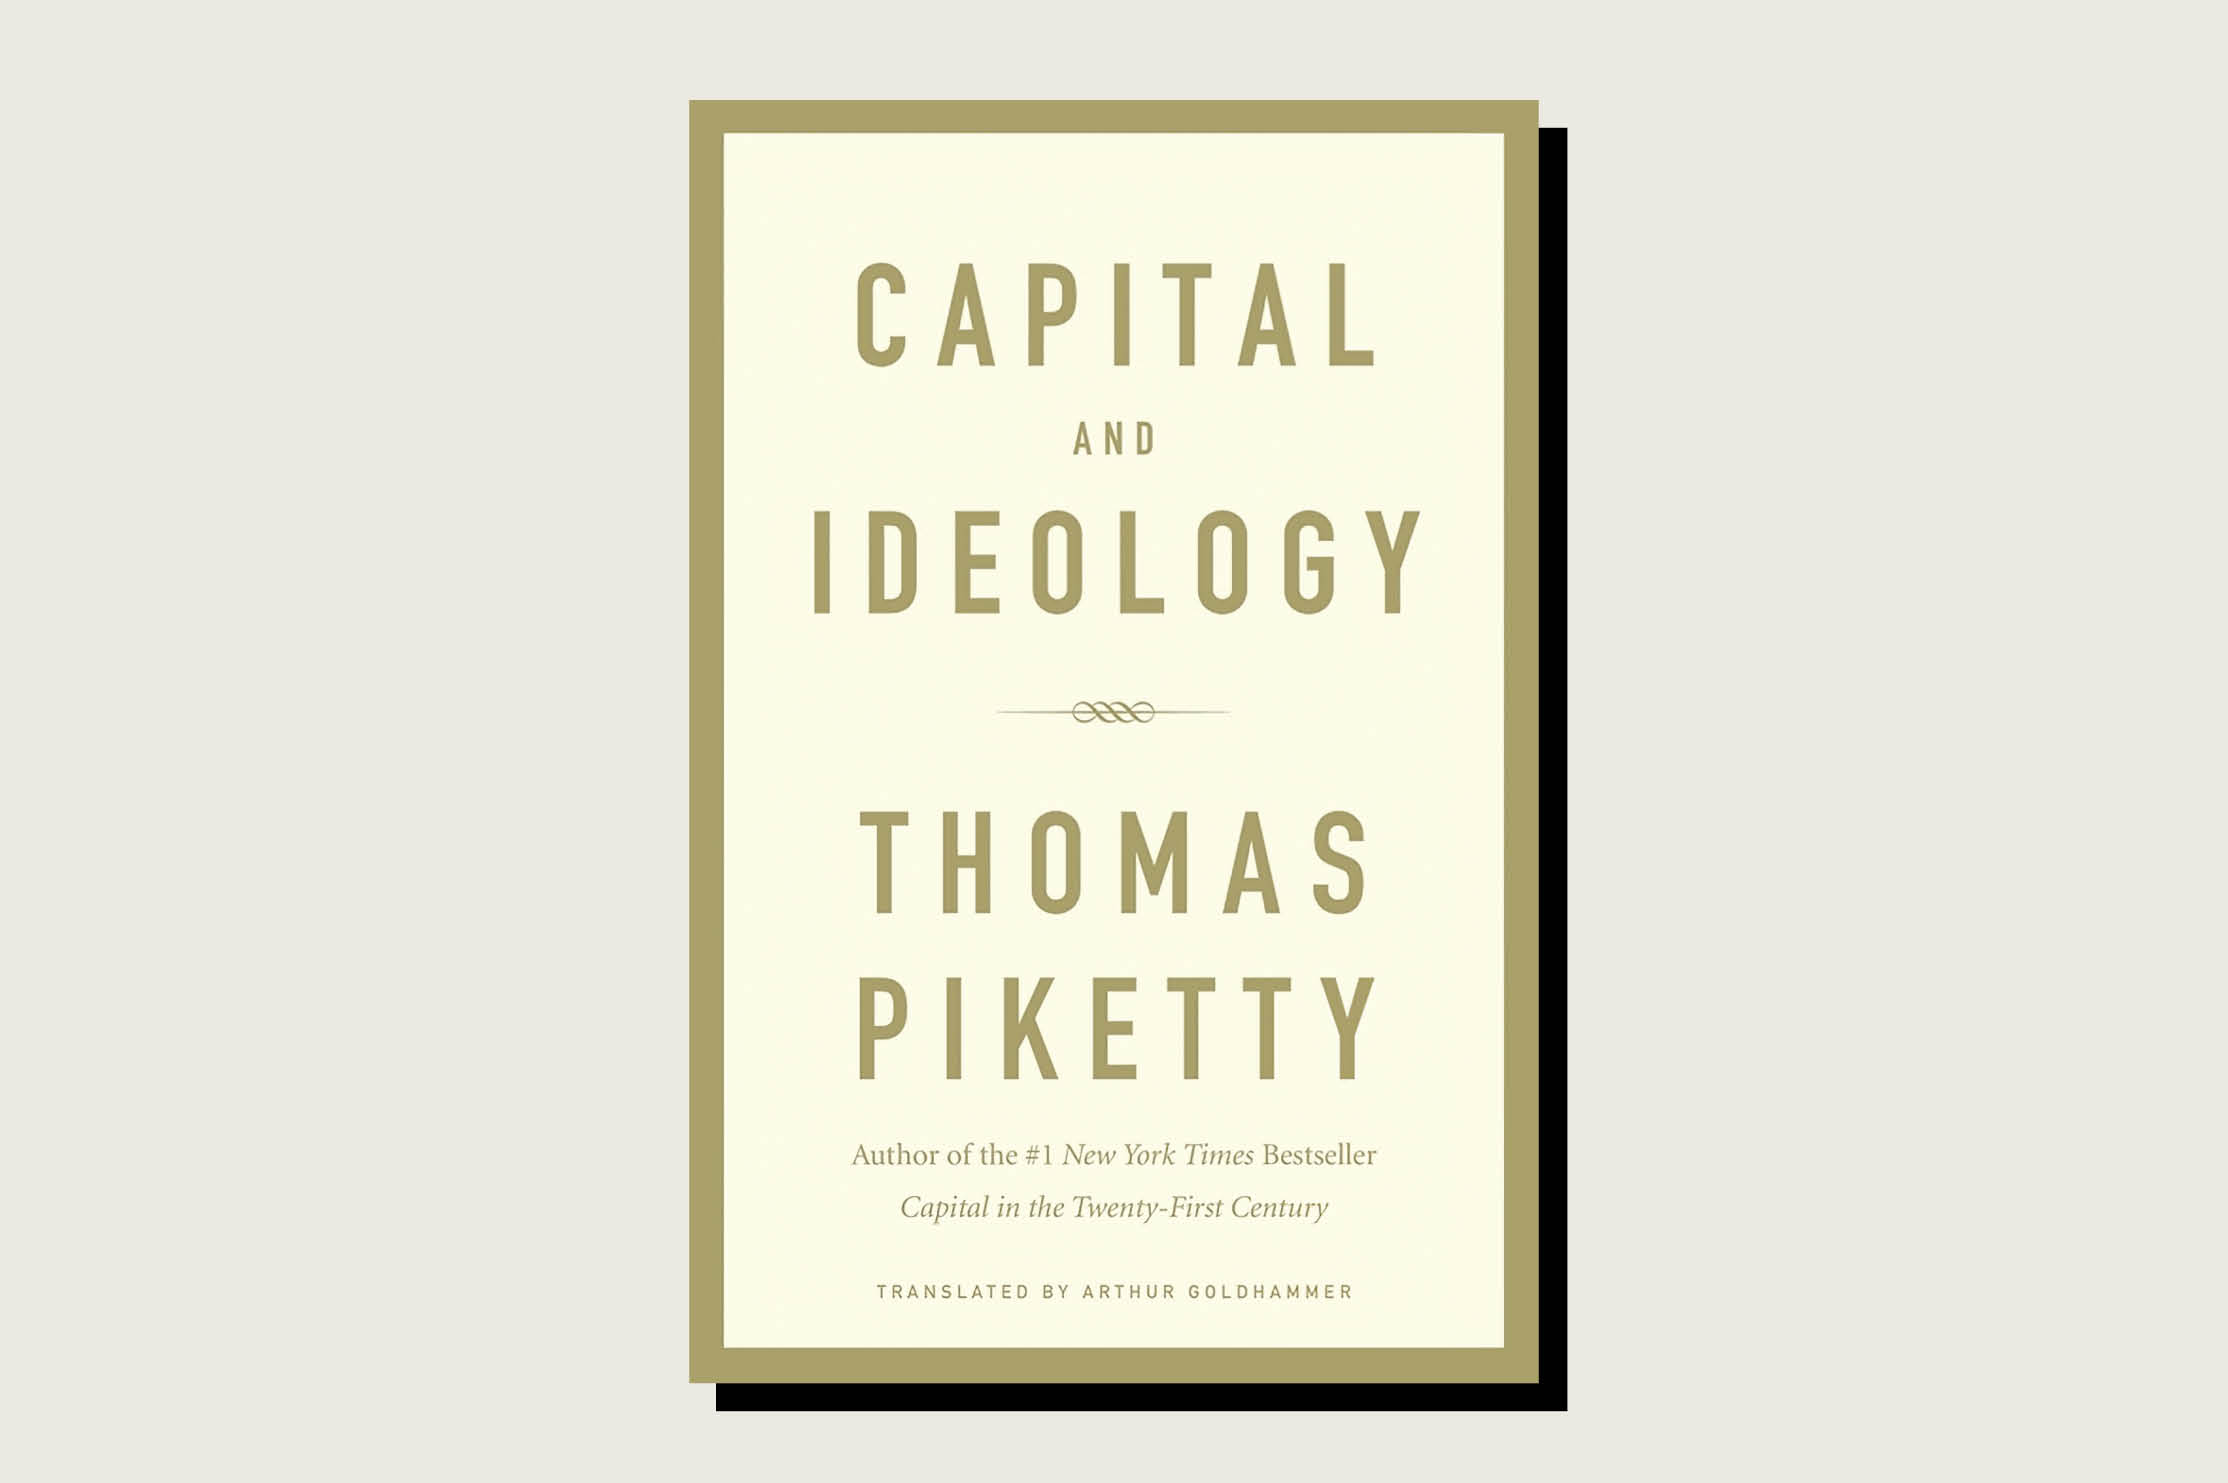 Capital and Ideology, Thomas Piketty, trans. Arthur Goldhammer, Harvard University Press, 1,104 pp., .95, March 2020